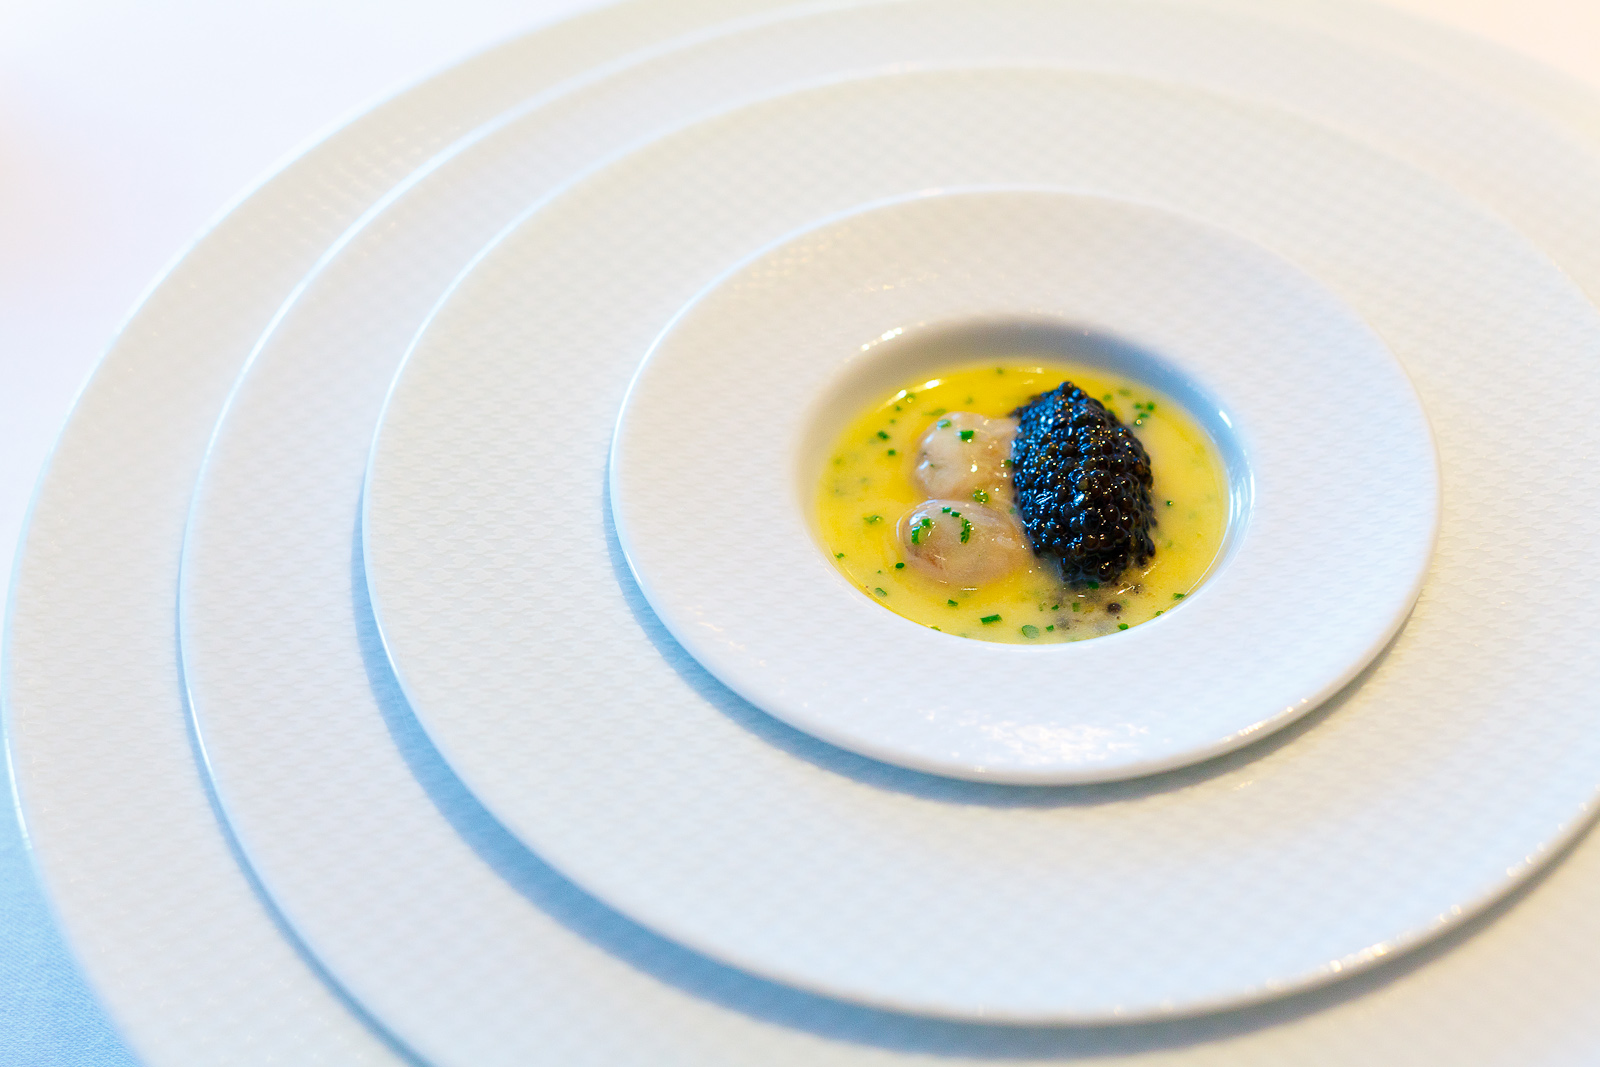 3rd Course: Oysters and pearls, sabayon of pearl tapioca with island creek oysters and sterling white sturgeon caviar